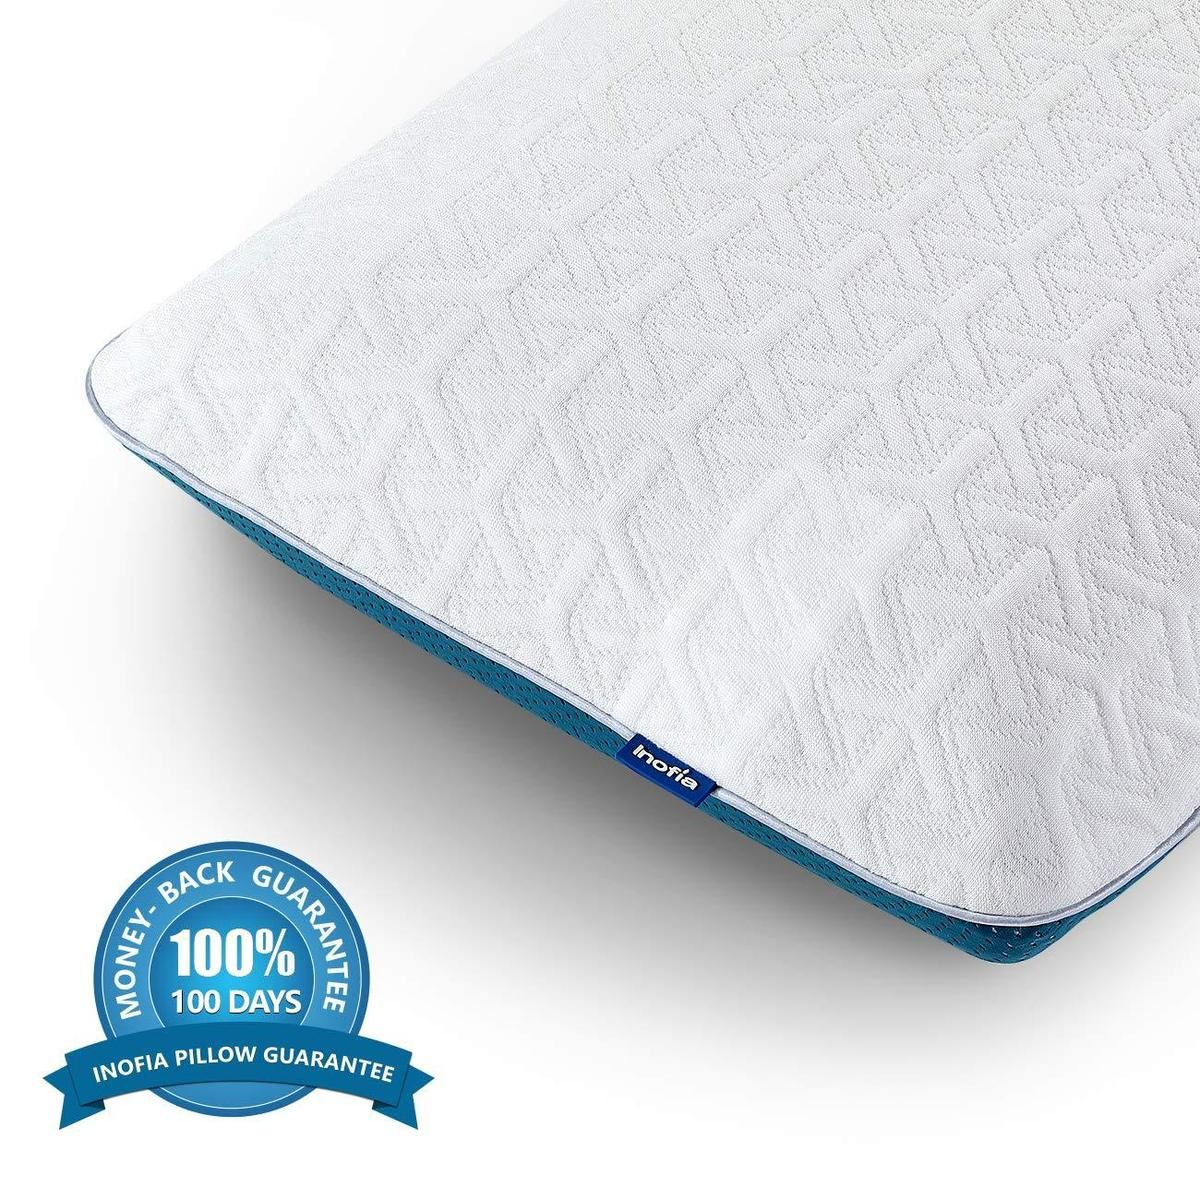 Graphene Memory Foam For Comfort But Supportive Made Entirely From A Unique Thermostatic Graphene I Memory Foam Pillow Foam Pillows Gel Memory Foam Mattress